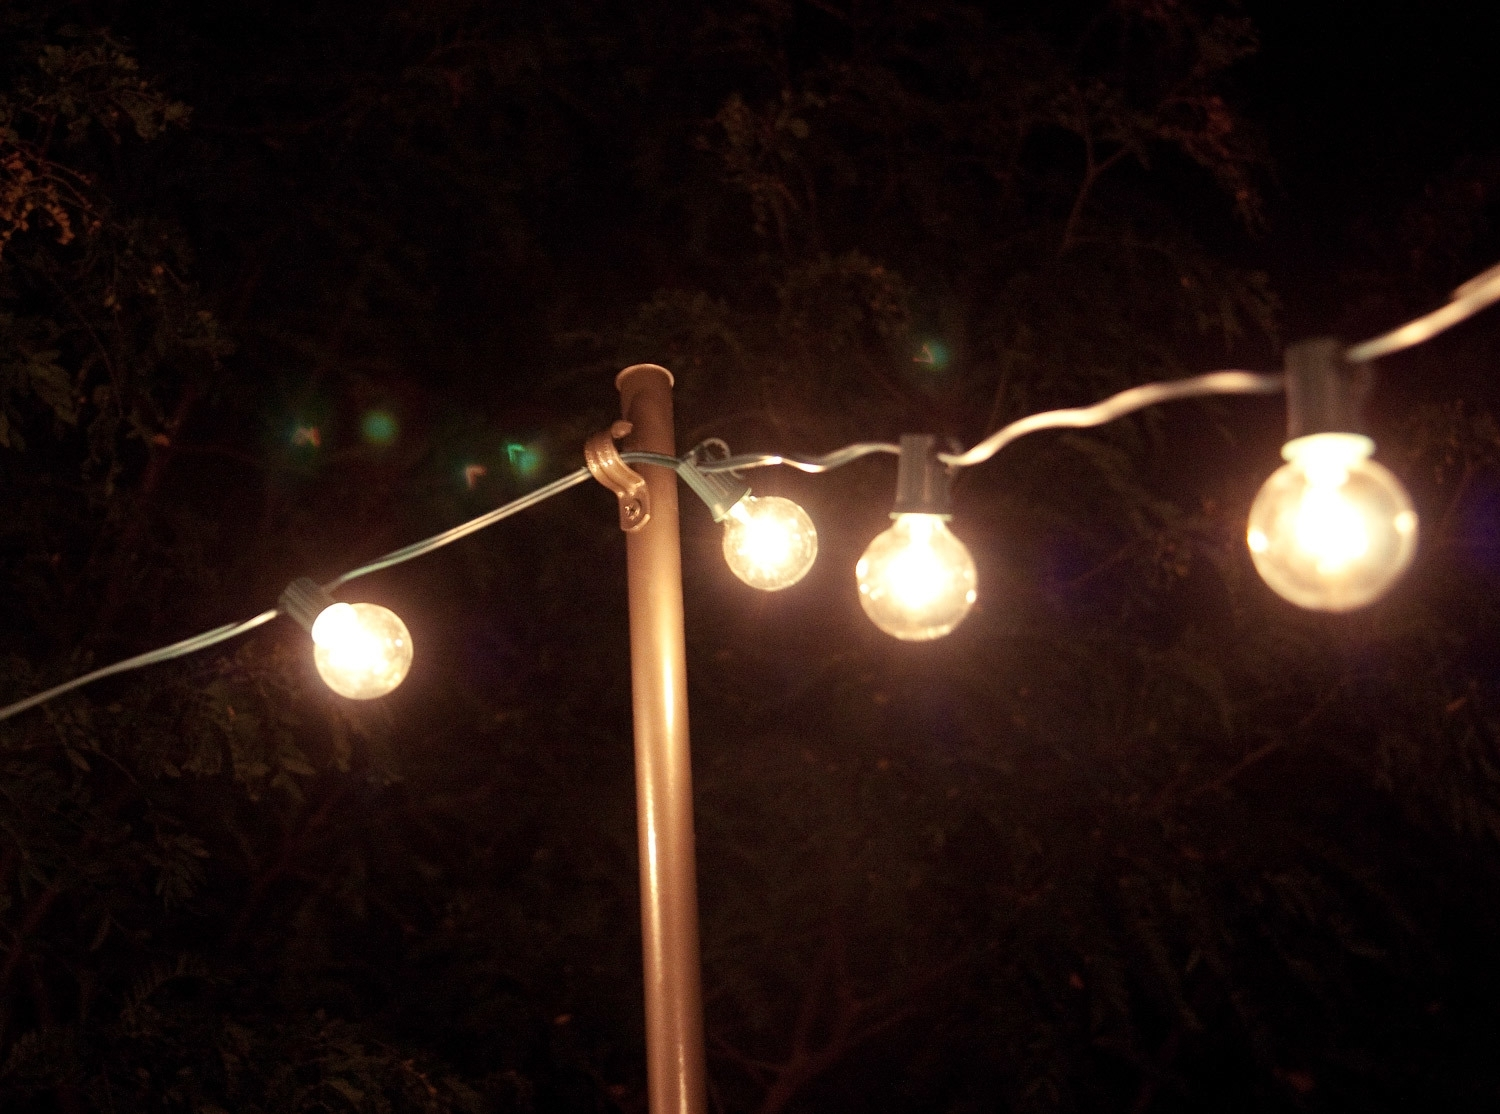 Wonderful Hanging Patio Lights Bright Diy Outdoor String With Light Intended For Outdoor Hanging Lights On String (View 15 of 15)